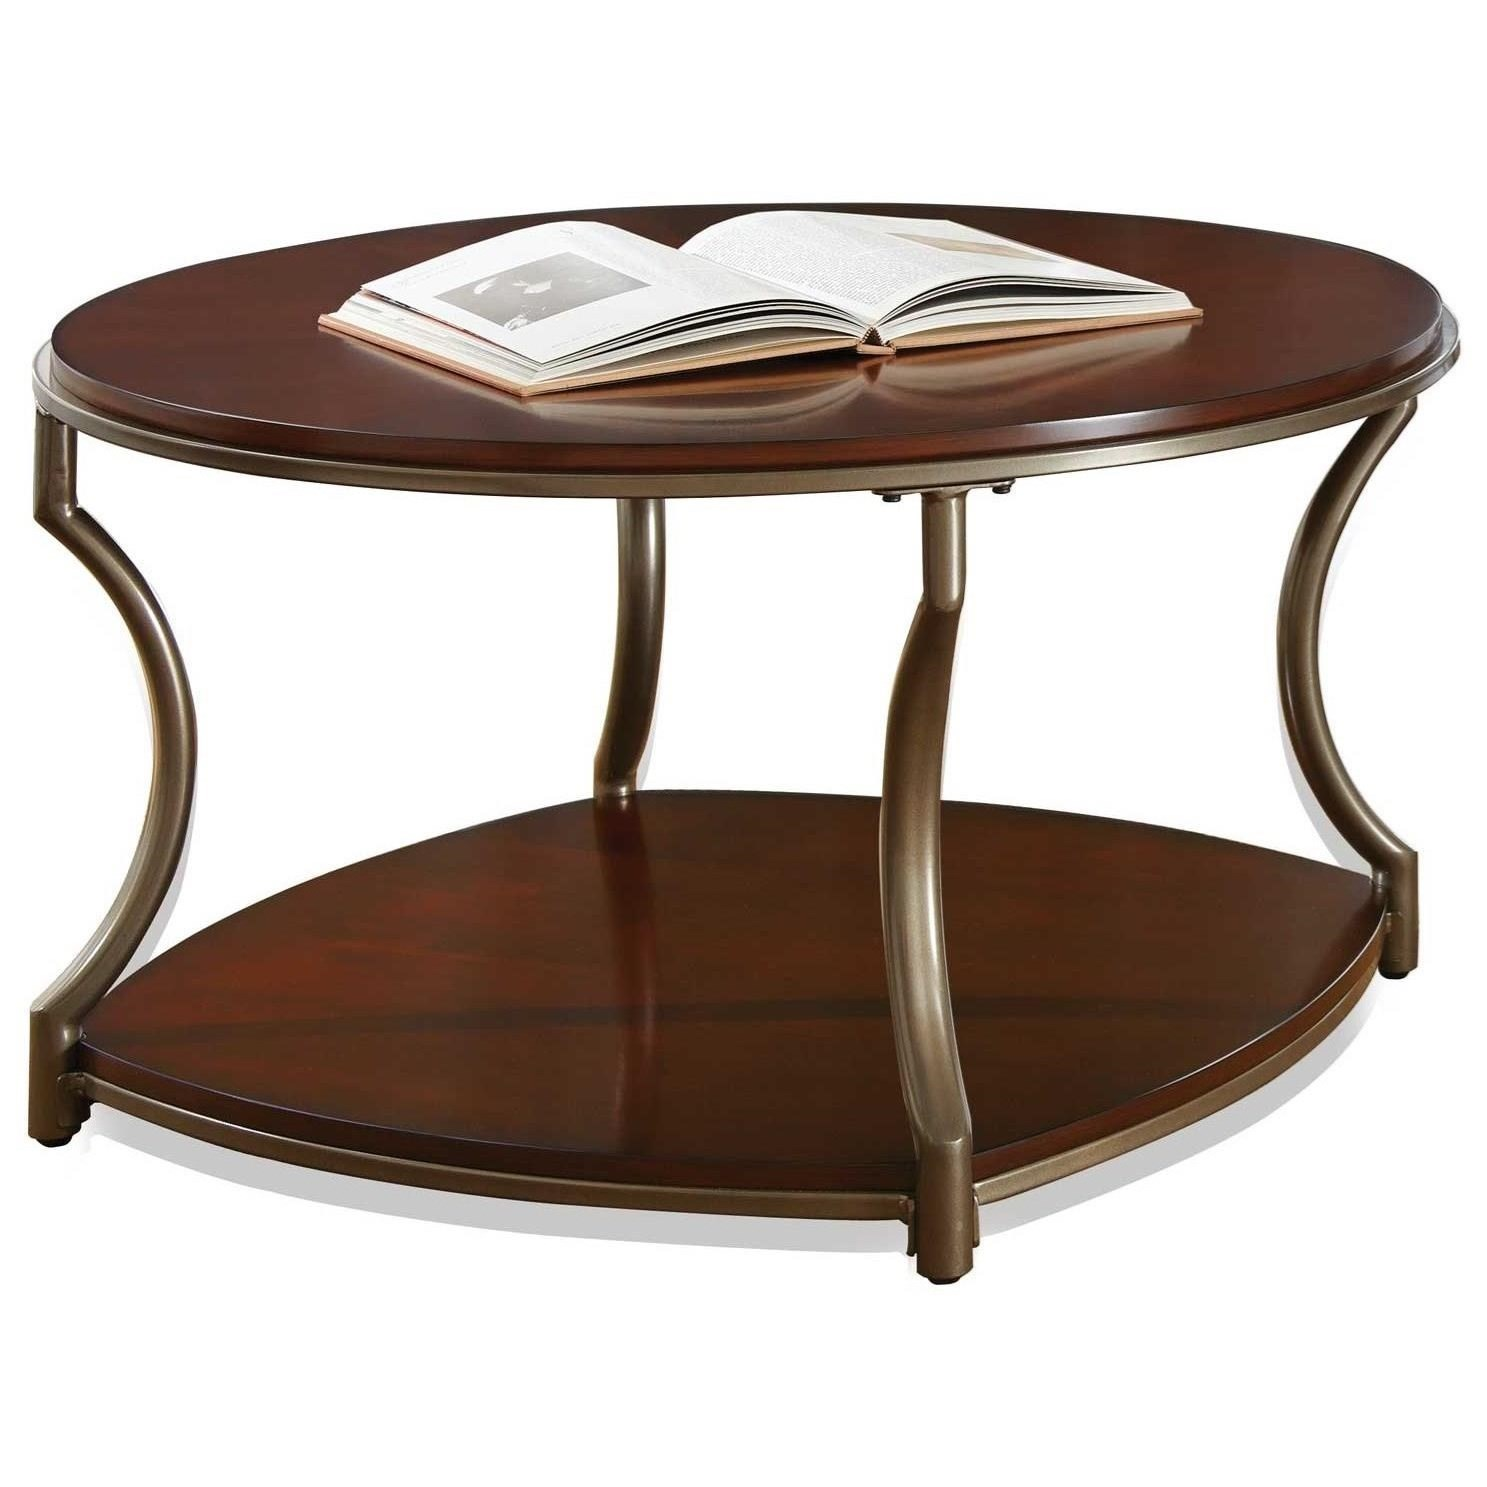 Transitional Round Cocktail Table with Shelf